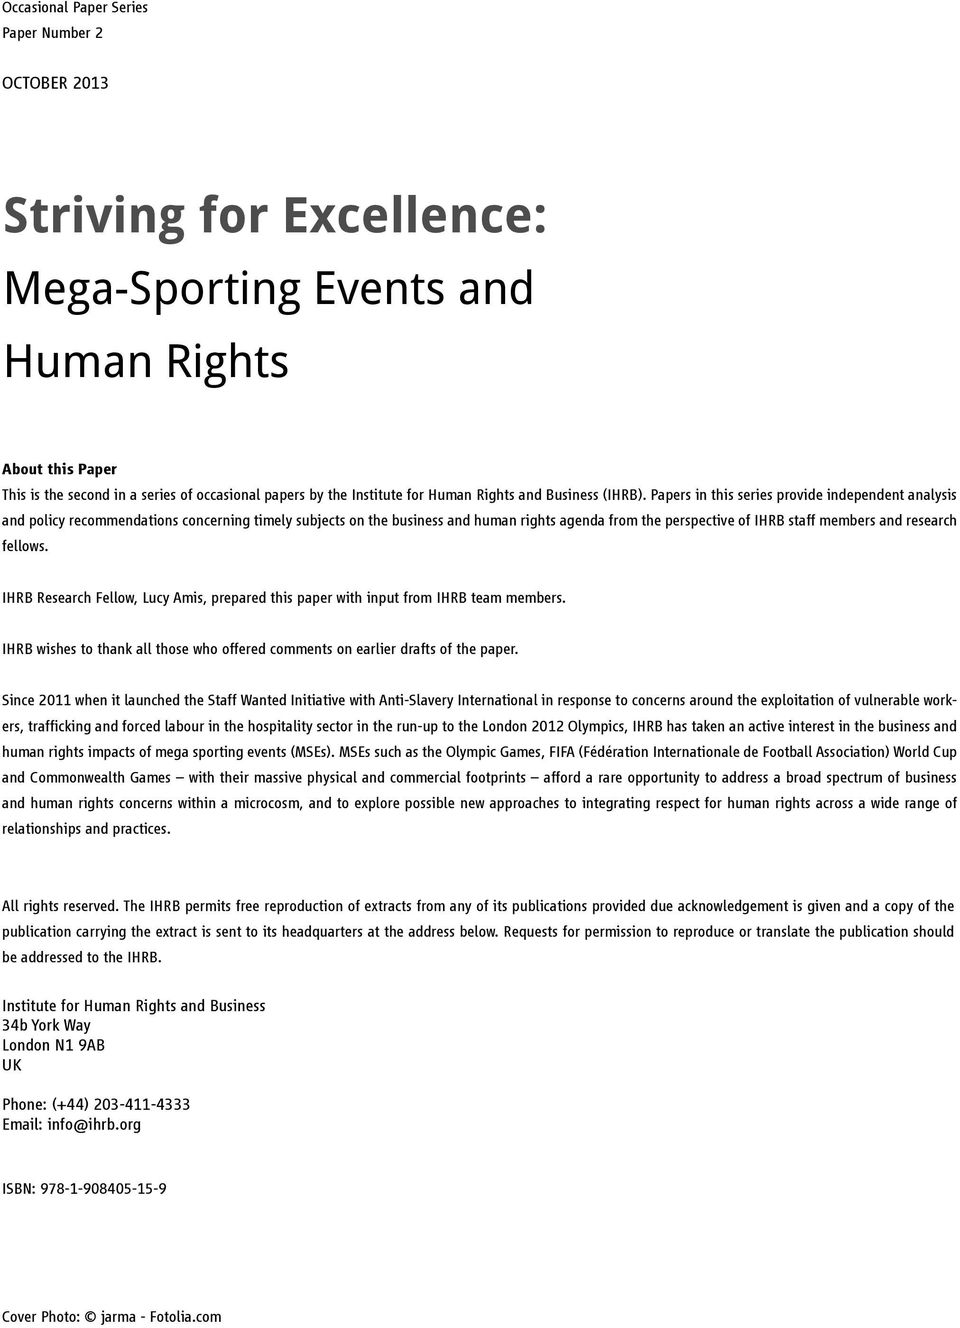 Papers in this series provide independent analysis and policy recommendations concerning timely subjects on the business and human rights agenda from the perspective of IHRB staff members and